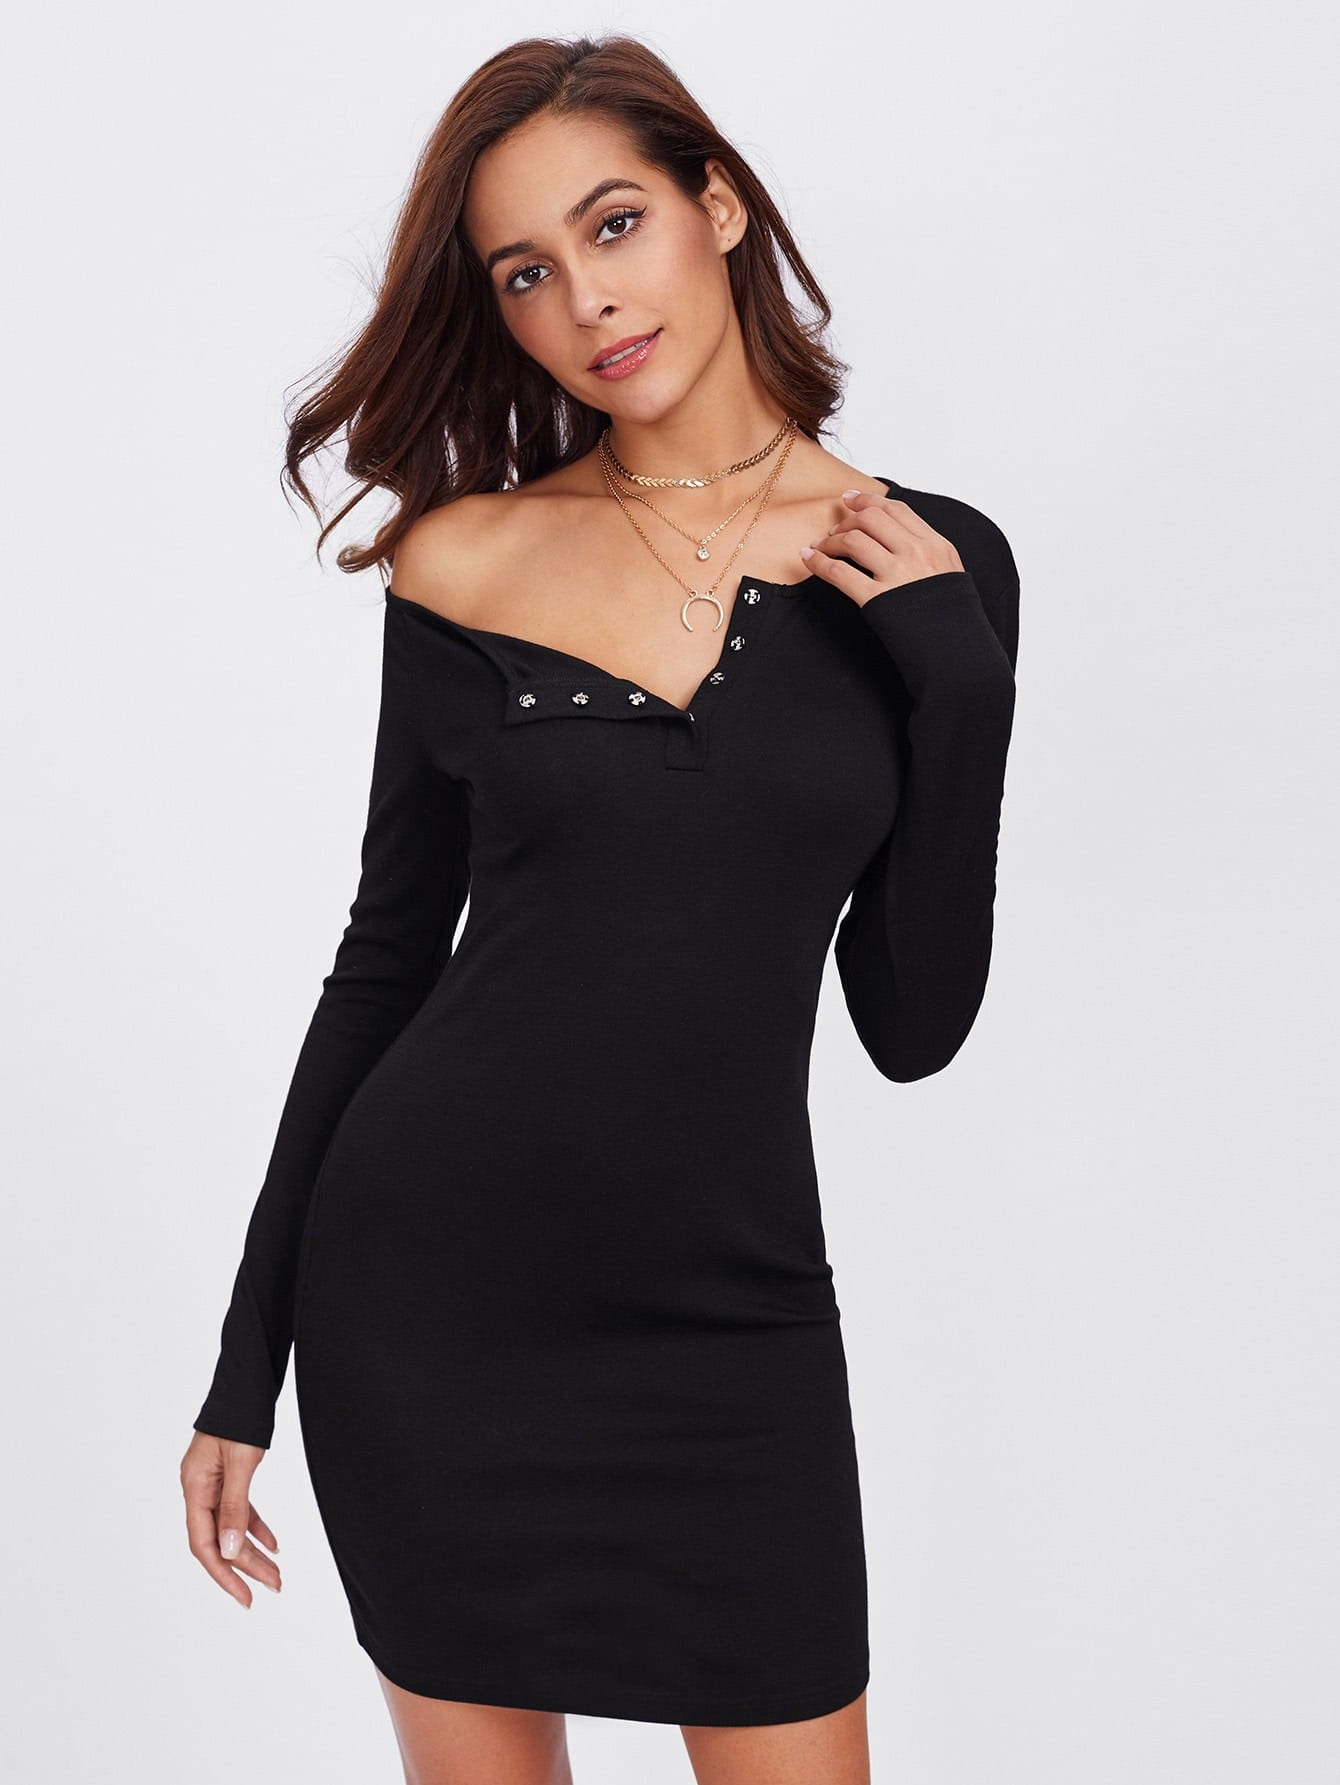 Snap Button Neck Solid Fitting Dress